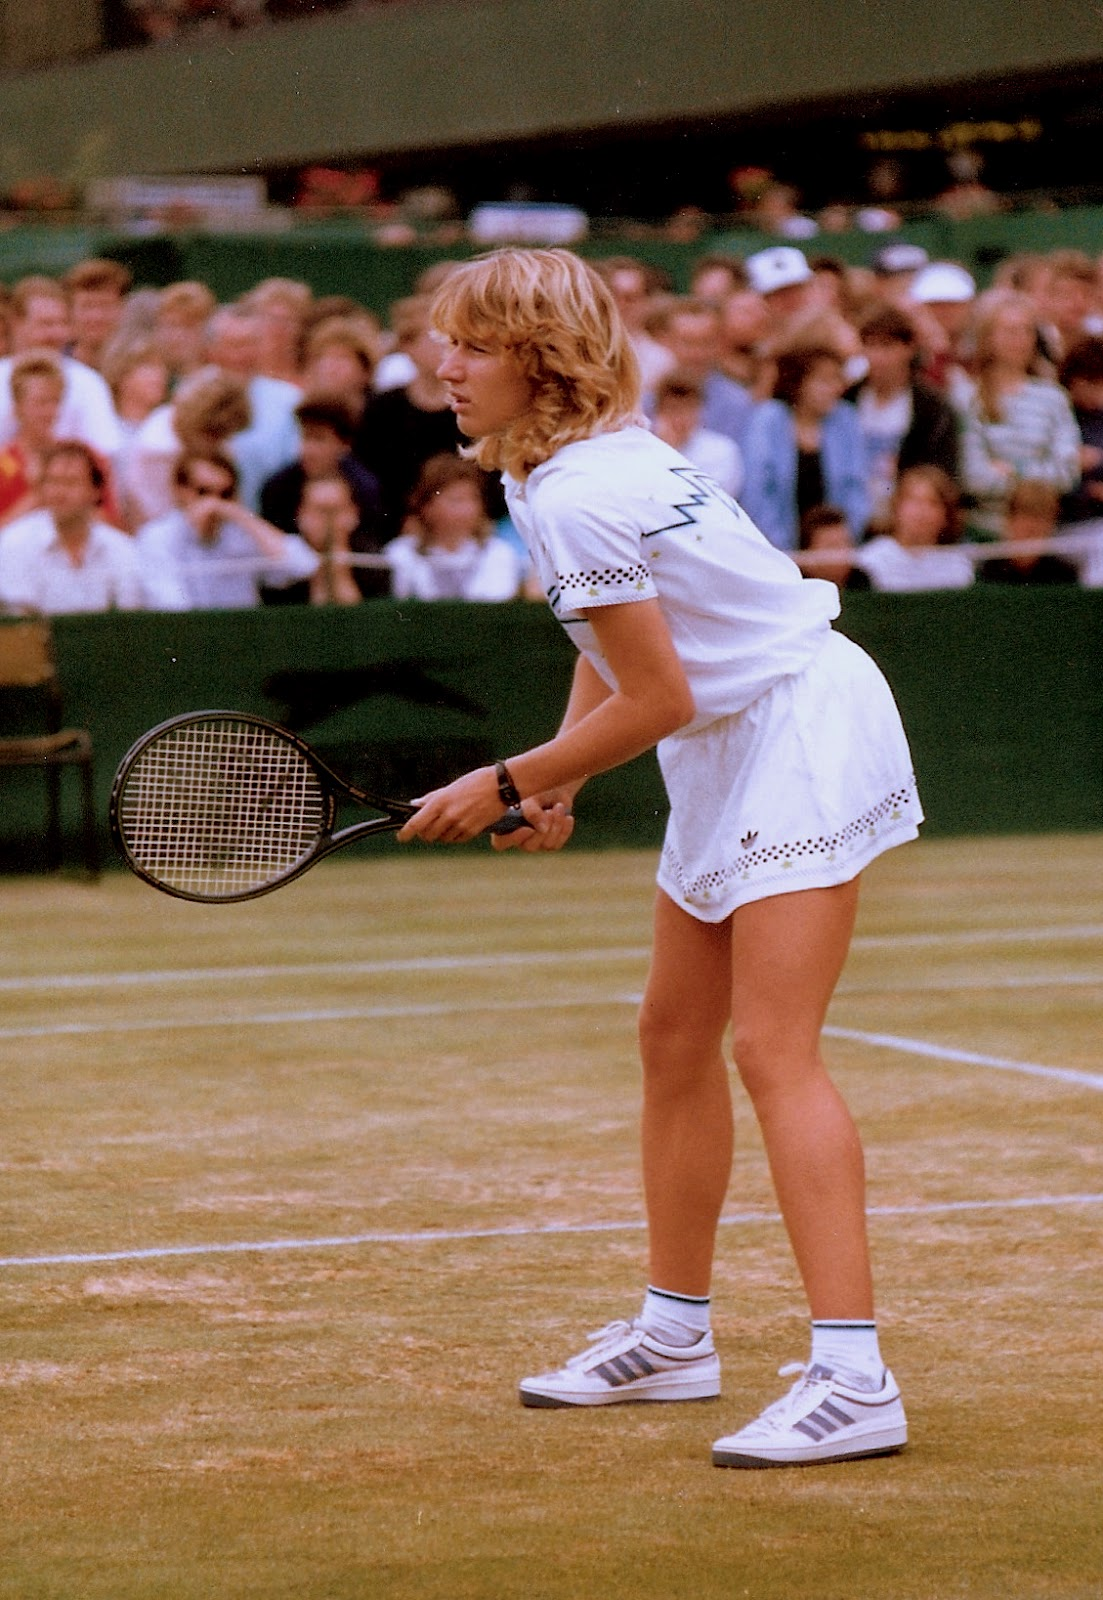 Page 4 - Wimbledon: The greatest players of the